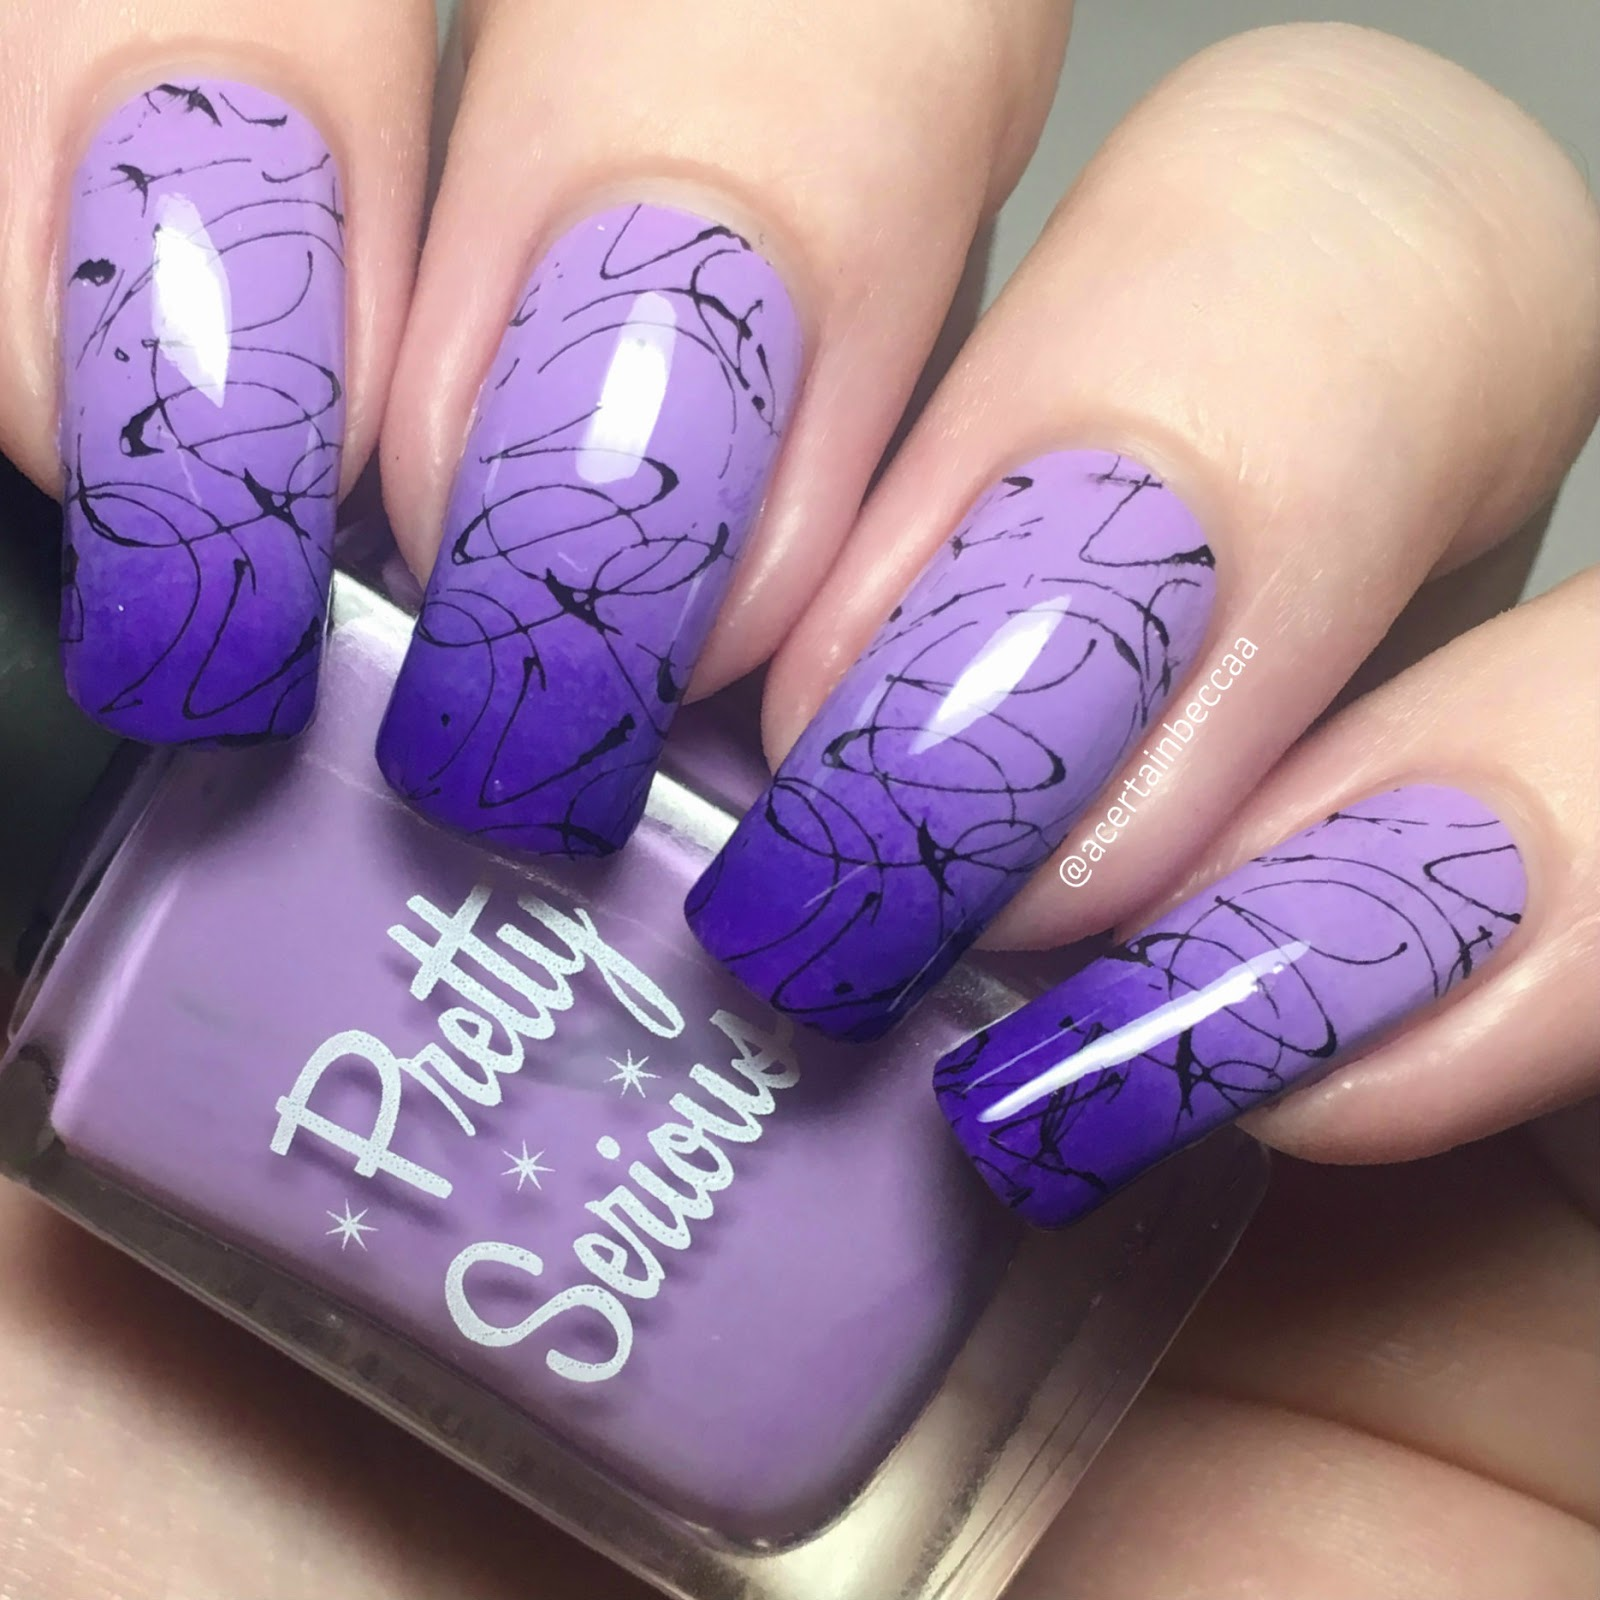 A Certain Becca Nails 26 Great Nail Art Ideas Pastel To Bold